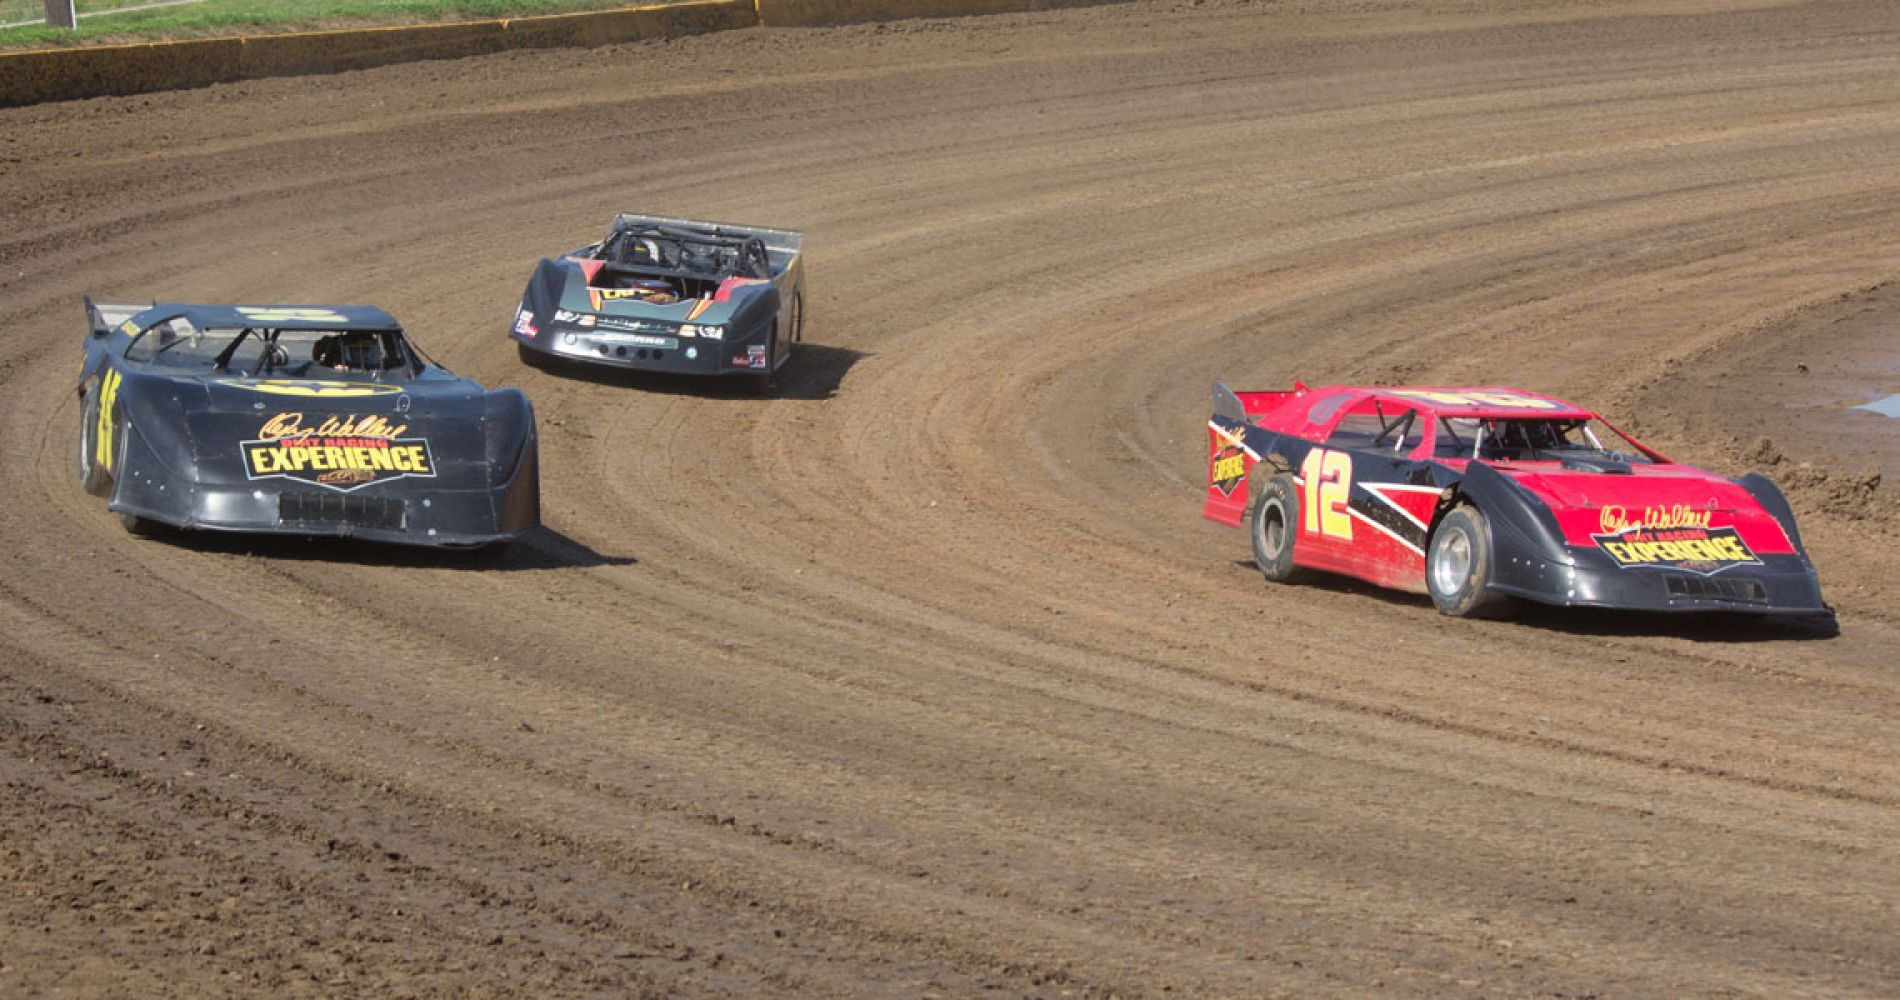 Dirt Race Car Driving Experience in Multiple Locations across United States